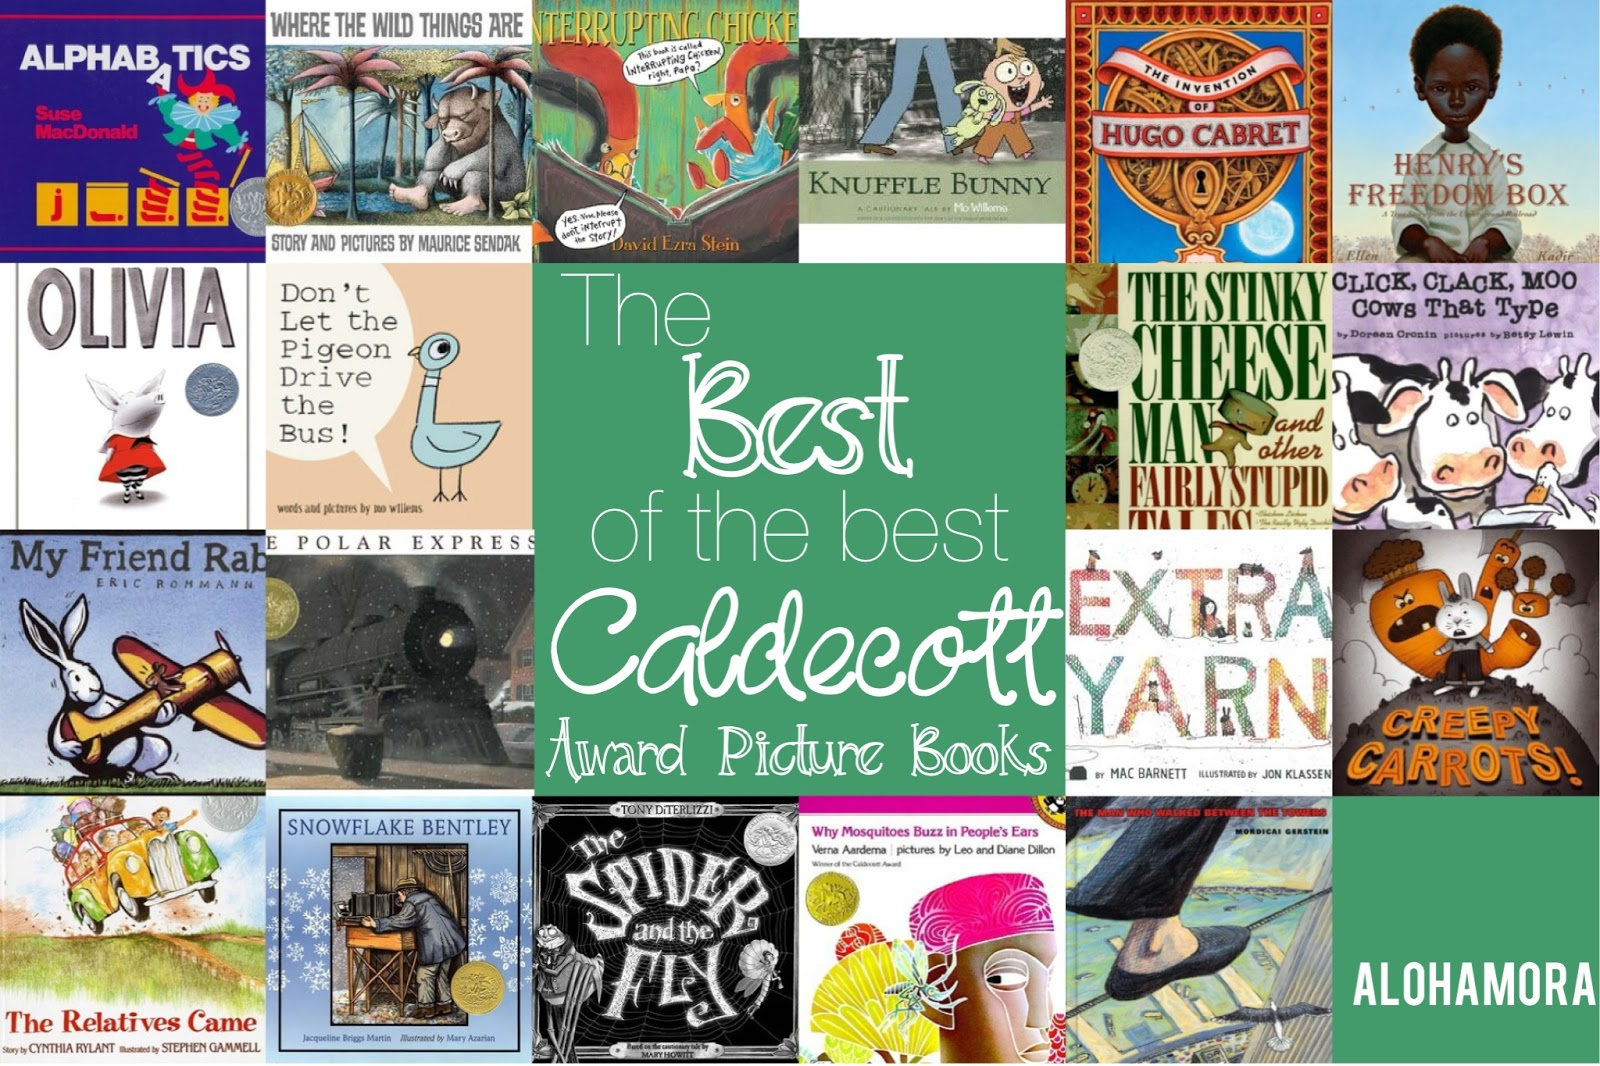 The Best of the Best Caldecott Award Picture Books.  These books all have amazing pictures/illustrations, but the story is absolutely fabulous as well.  These books may great lessons, and every library (home, school, or public) should have them, if they don't already.  Alohamora Open a Book http://www.alohamoraopenabook.blogspot.com/